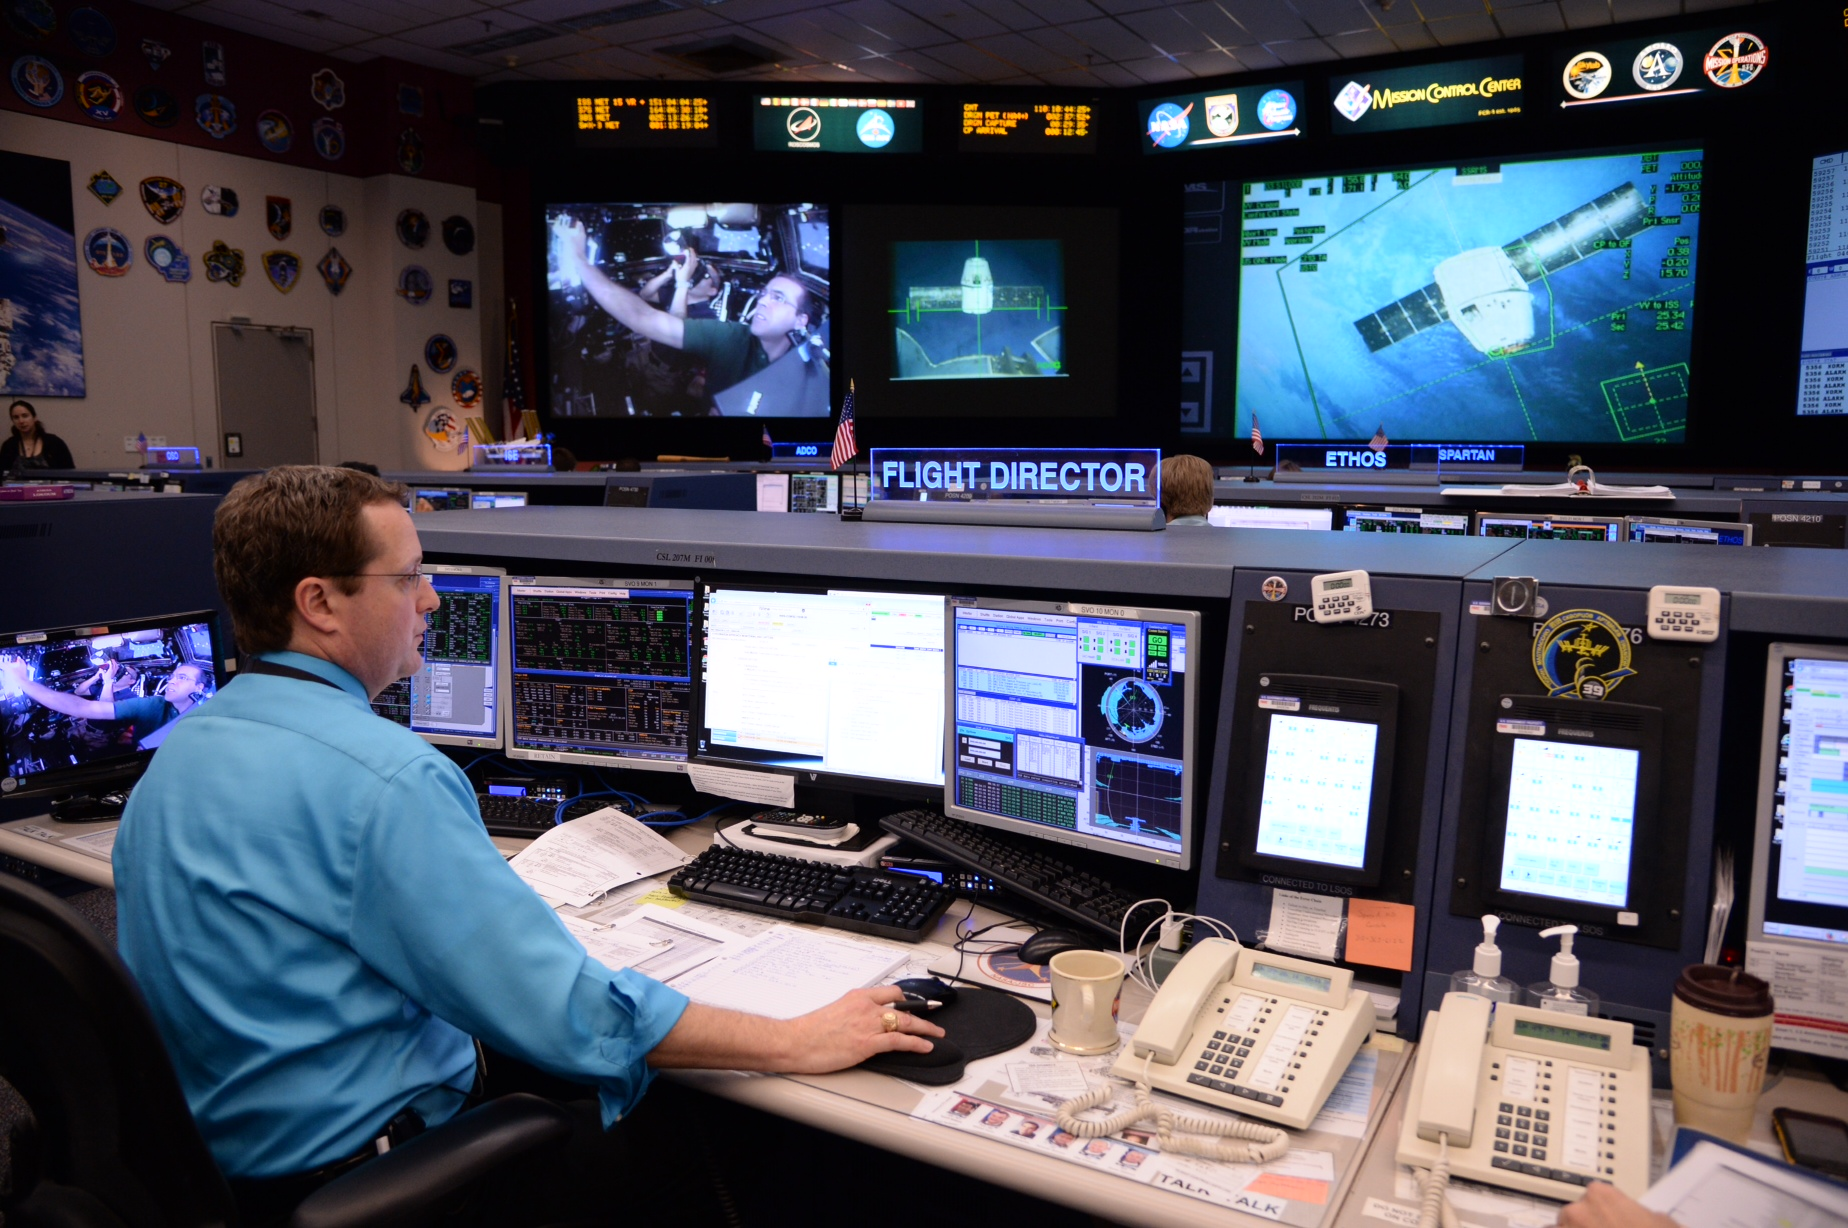 houston space station controls - photo #21